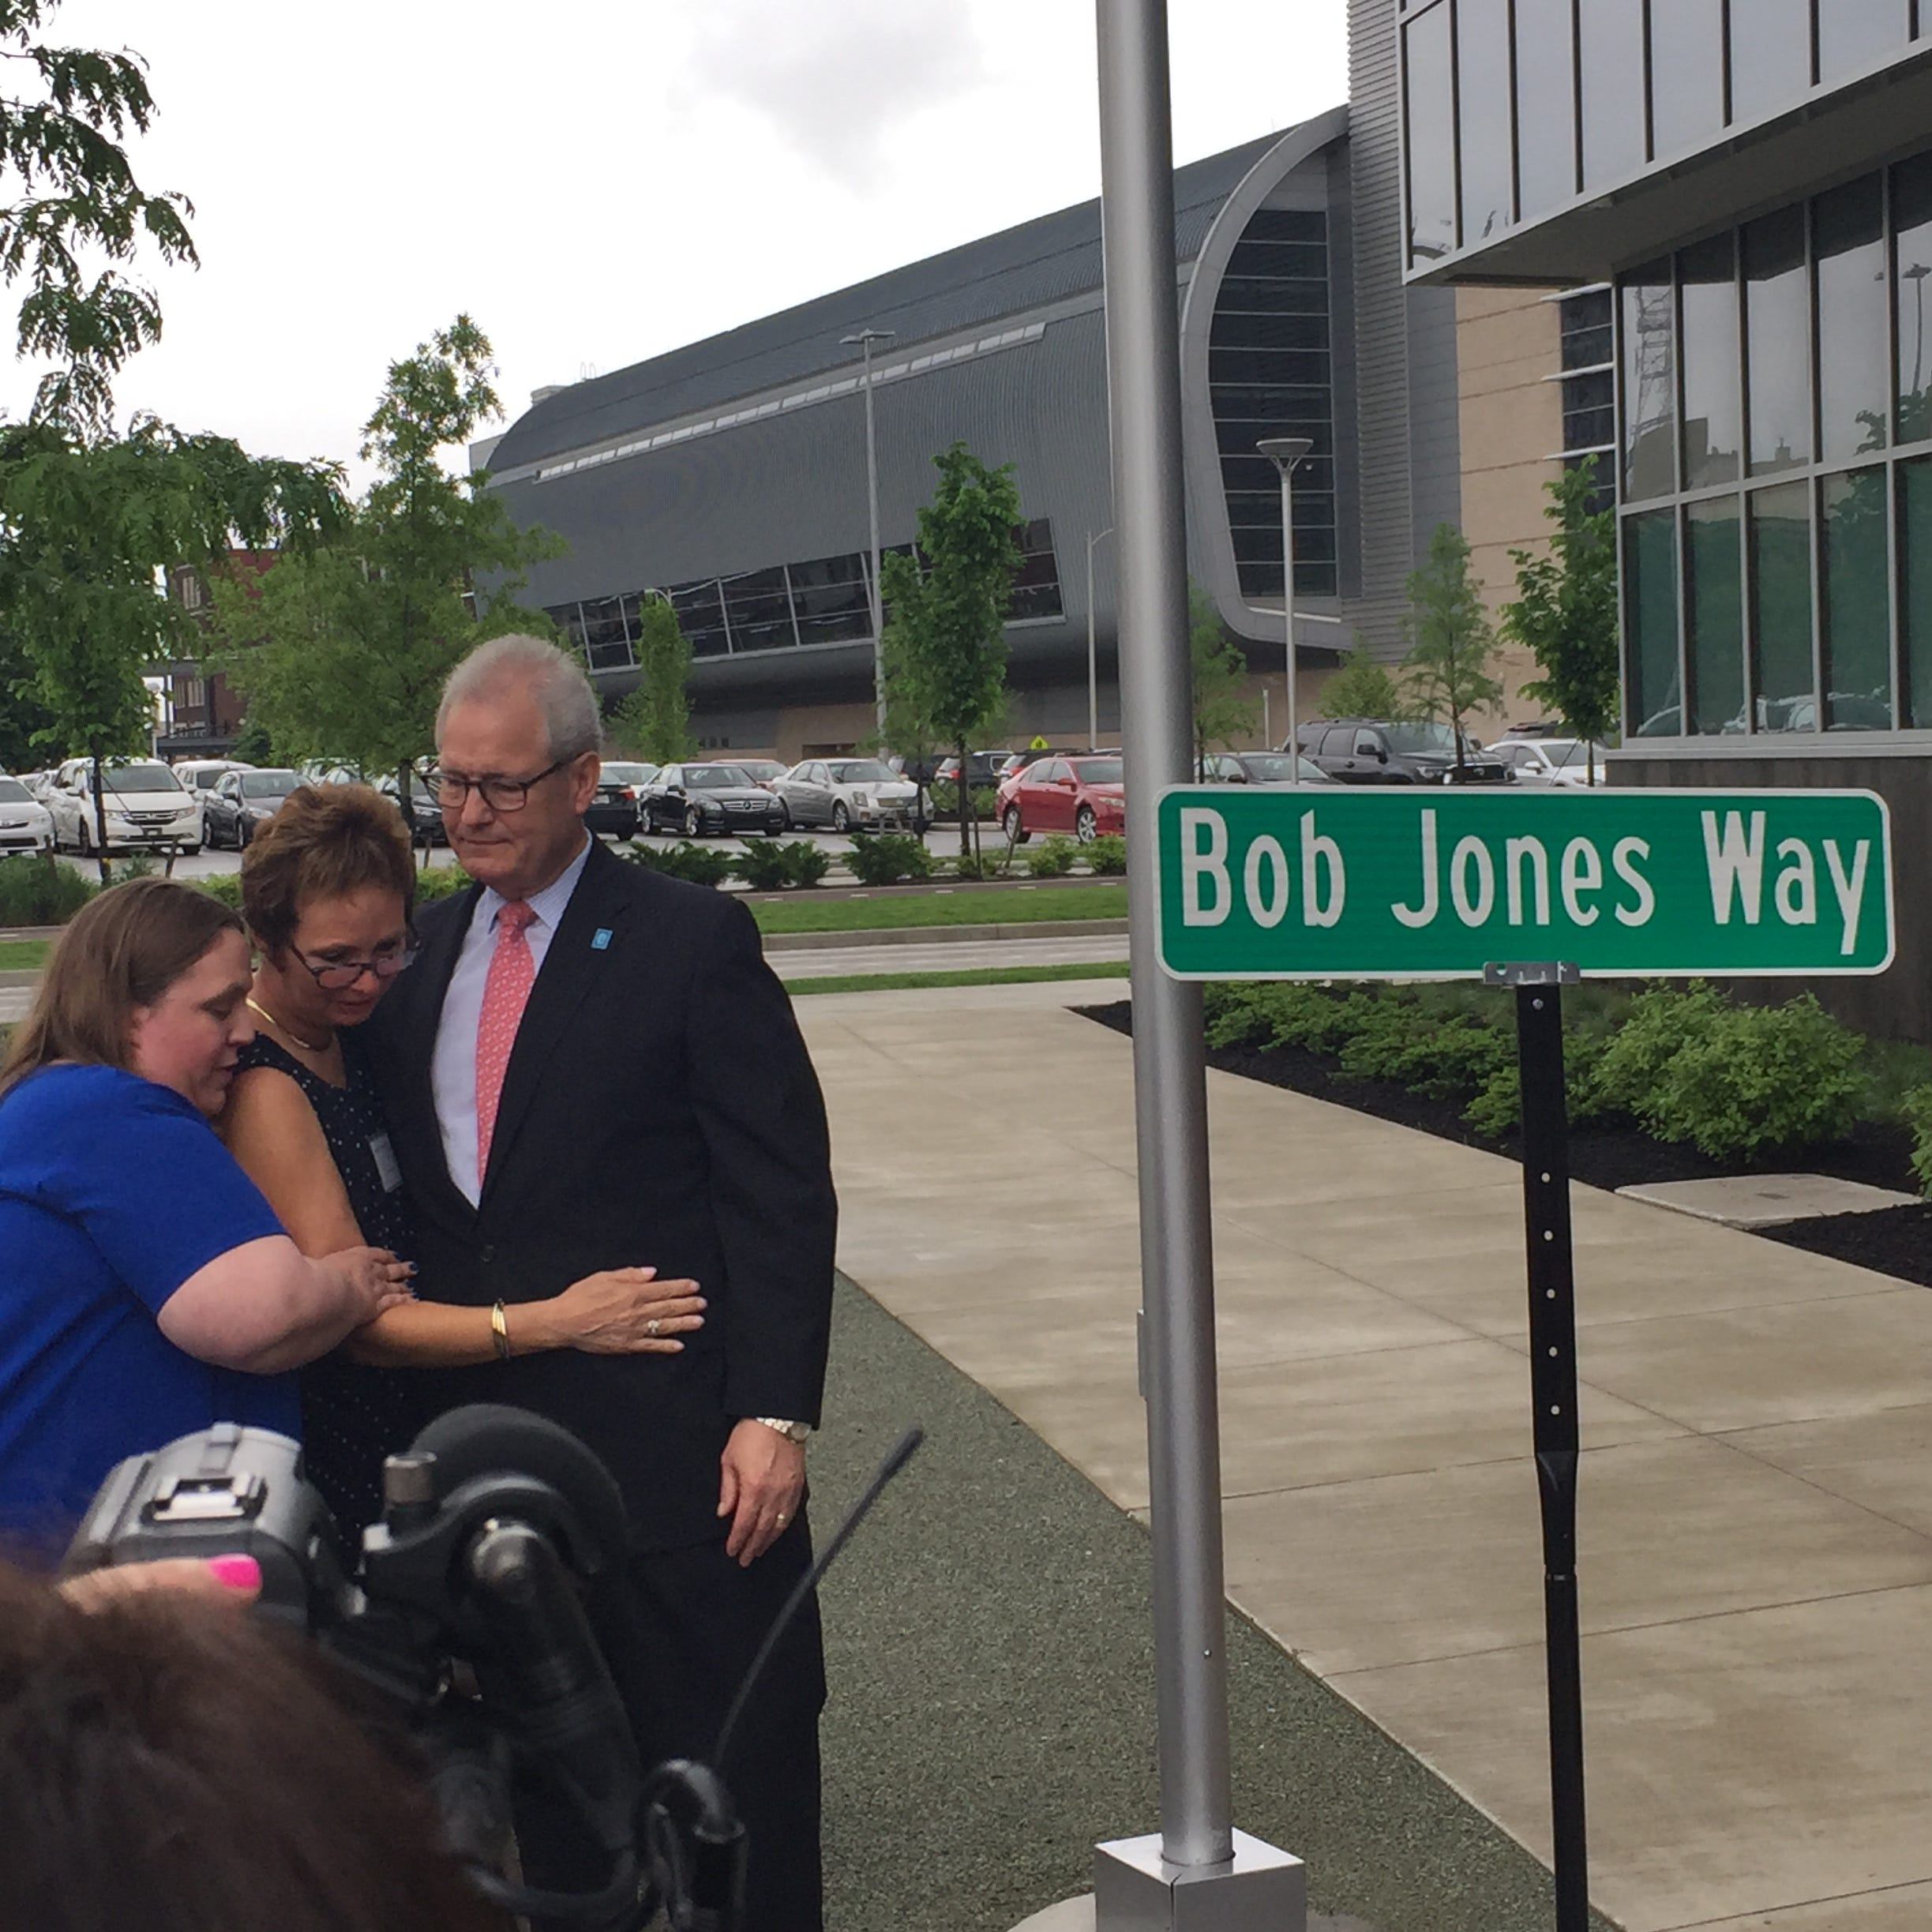 Part of Walnut Street to become Bob Jones Way in honor of retiring Old National CEO